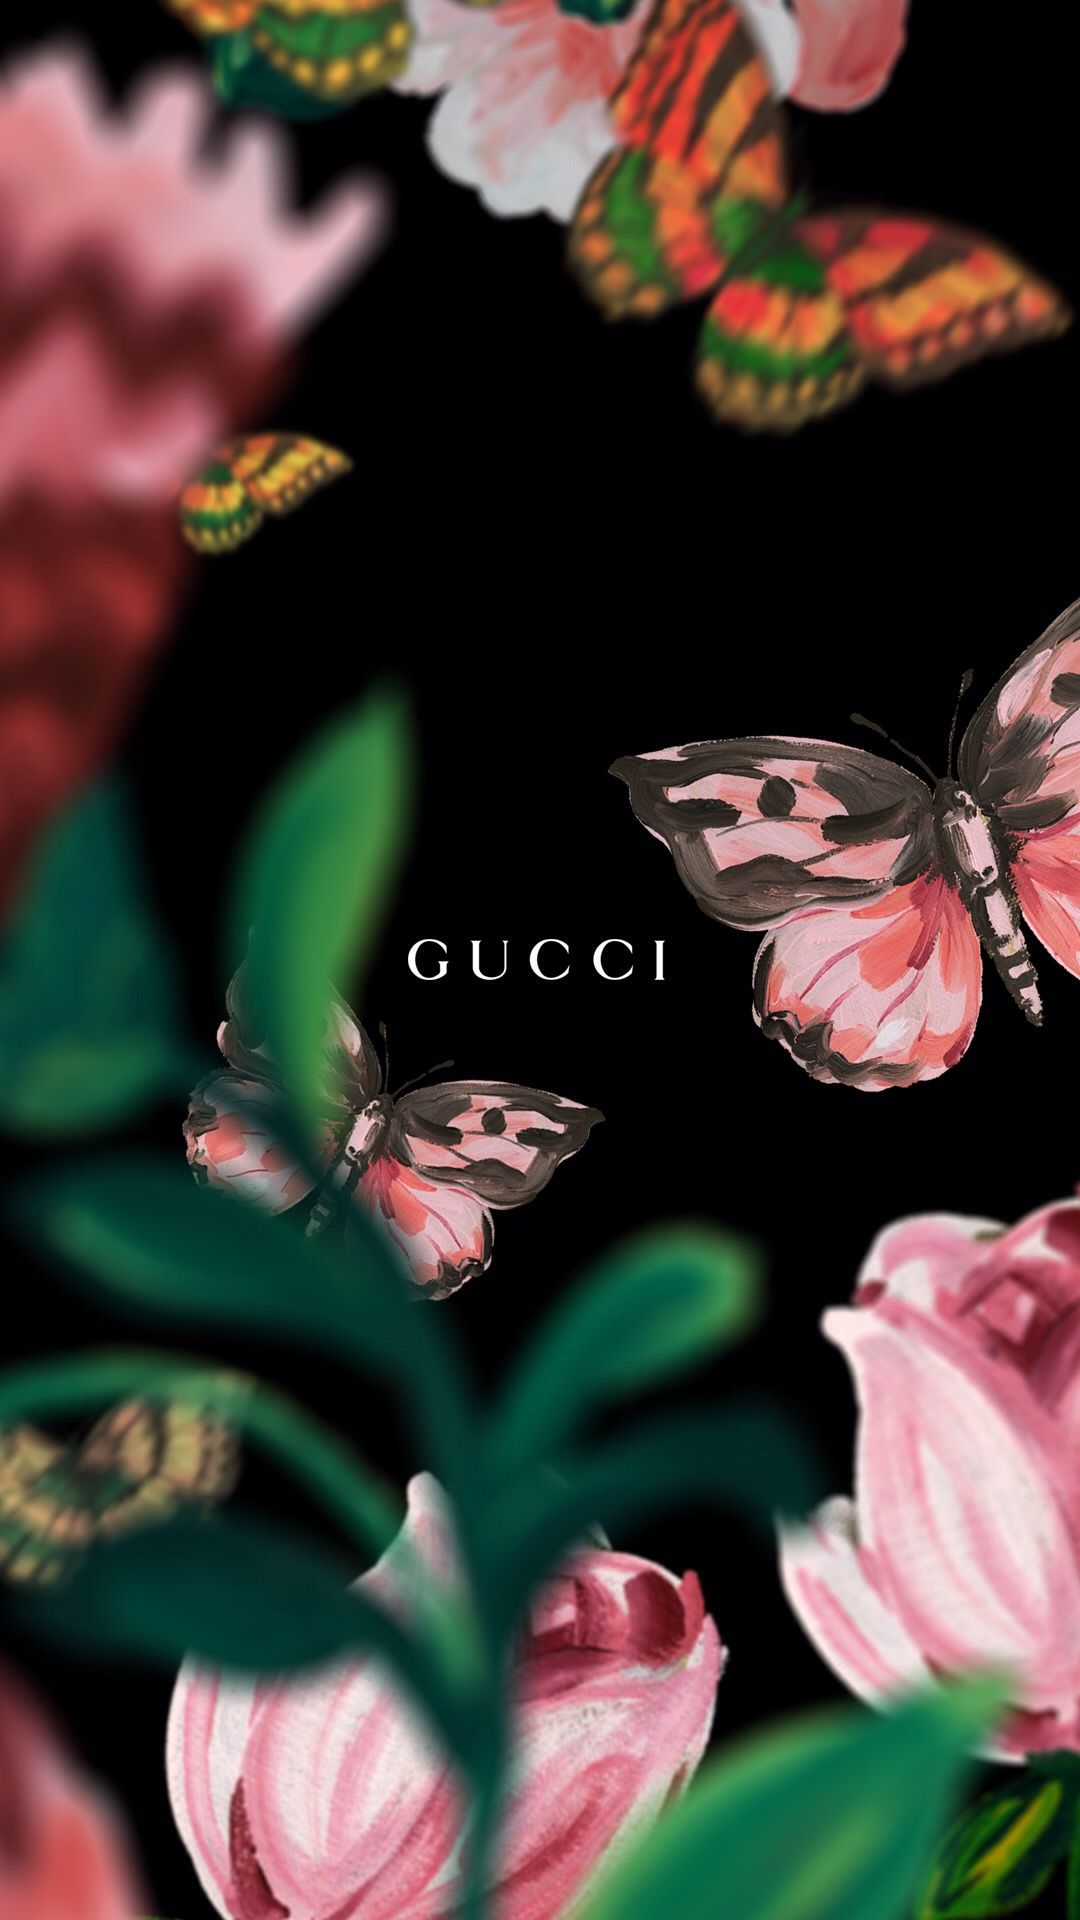 Iphone 6 wallpaper tumblr dope - Gucci Wallpaper From Their App